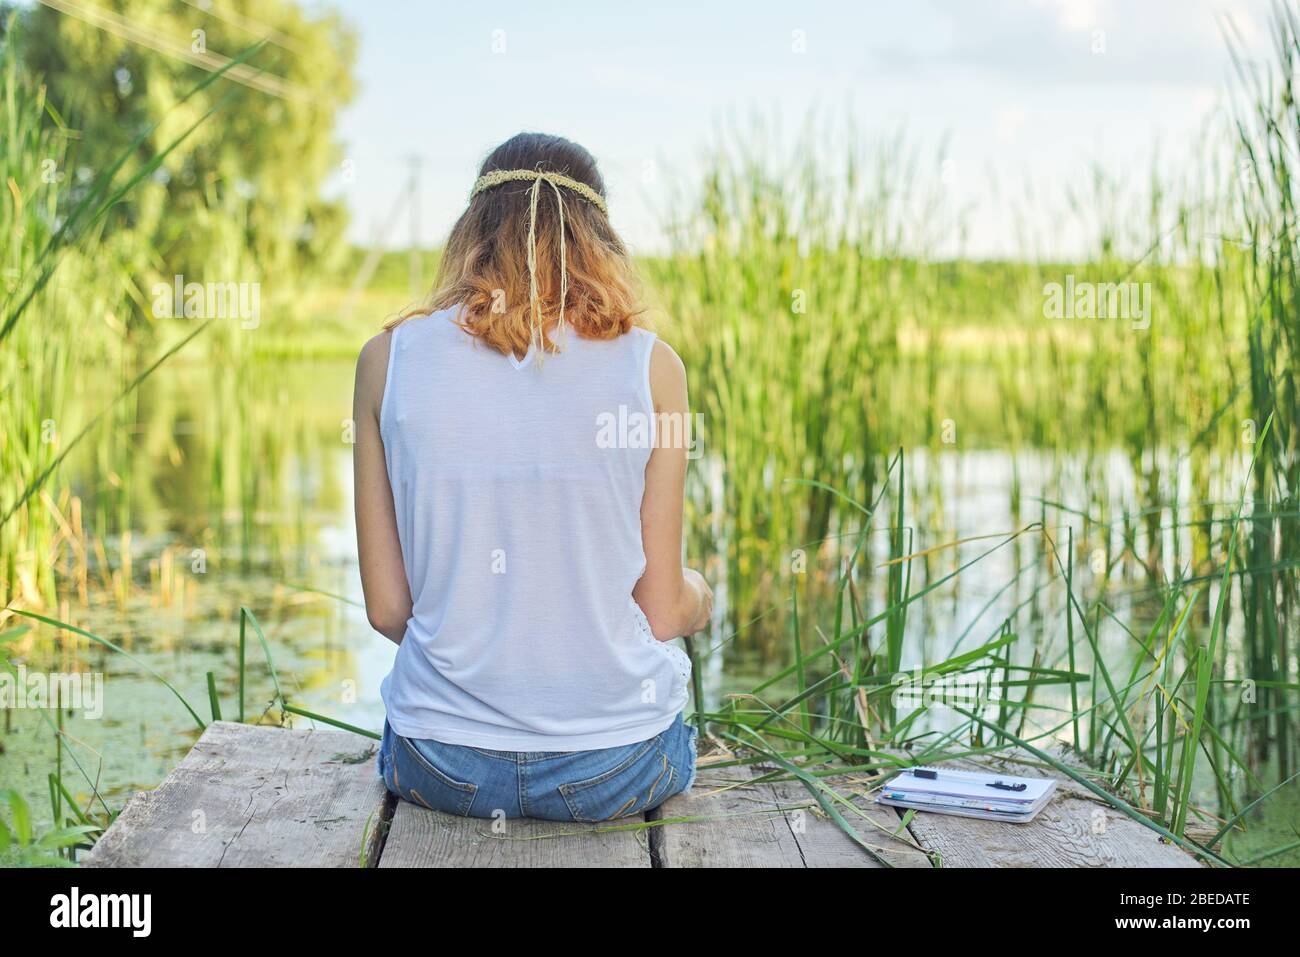 Young woman sitting with her back on wooden pier, enjoying picturesque view of lake water, relaxing in nature on sunny summer day, copy space Stock Photo